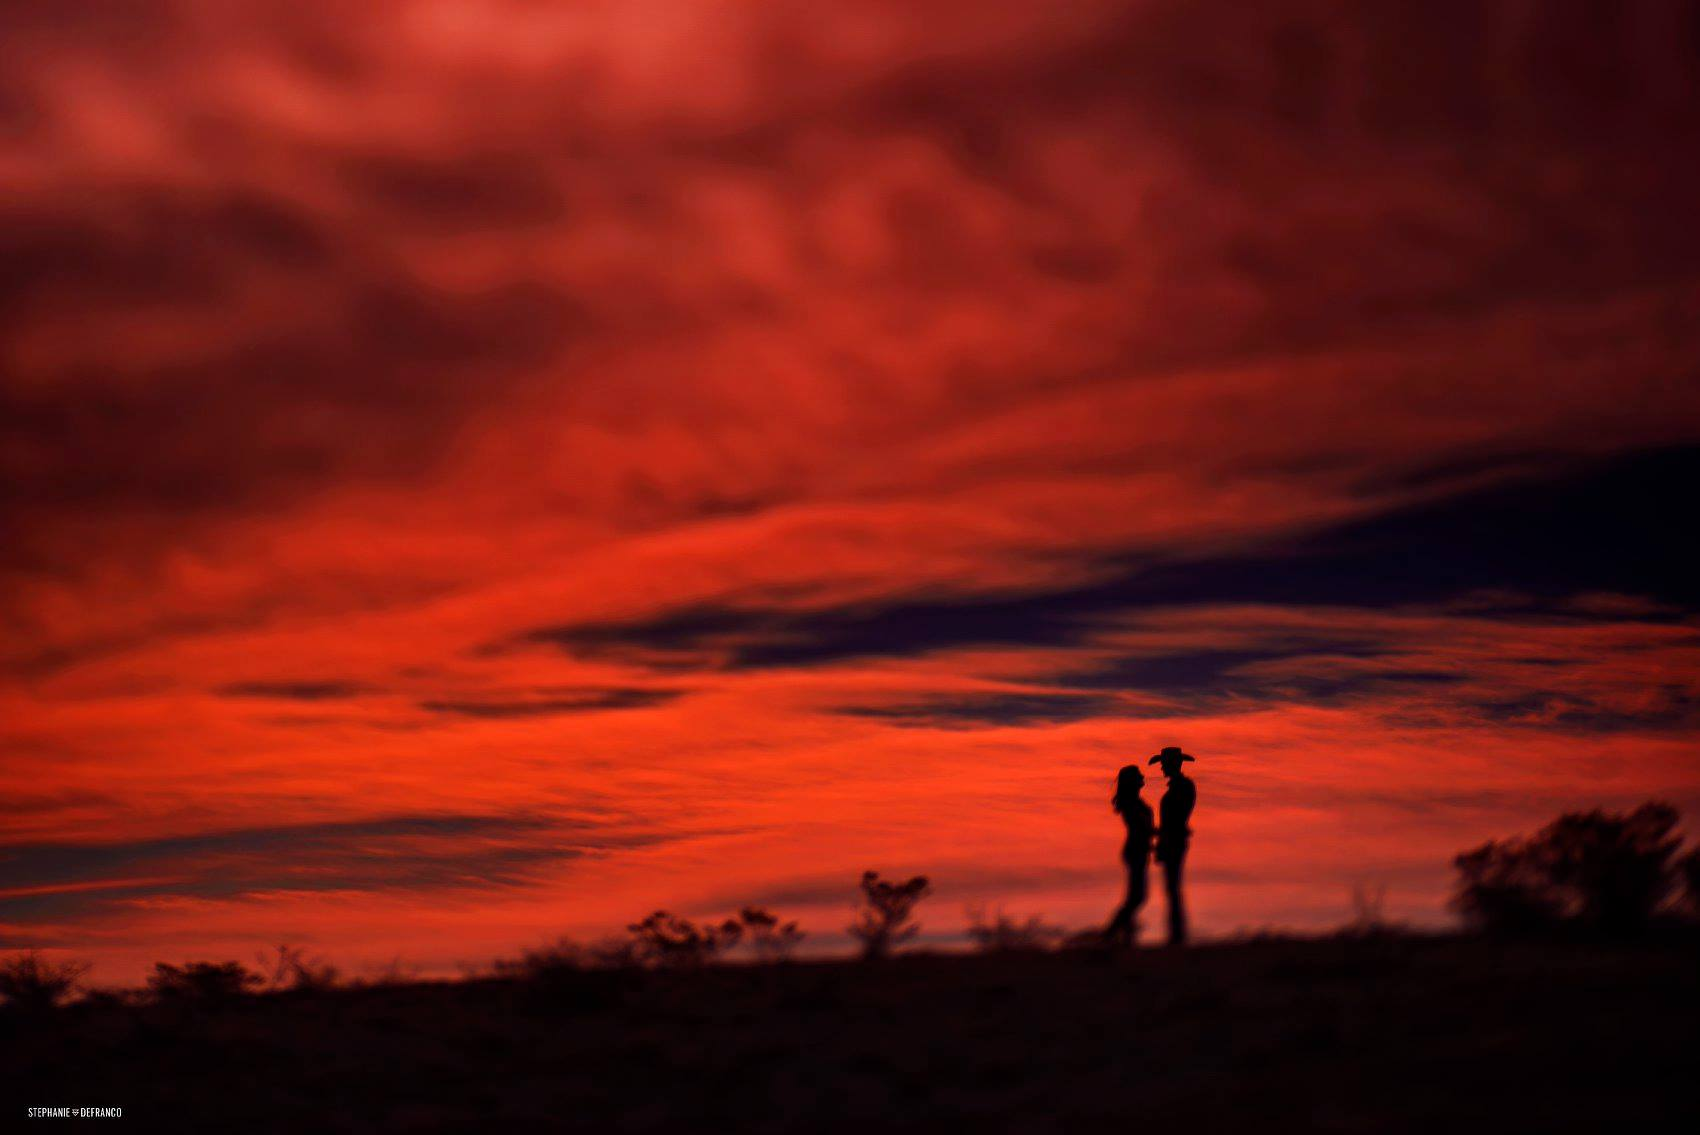 couple silhouette against red sky sunset red and black desert Stephanie DeFranco Lensbaby featured photos of the week